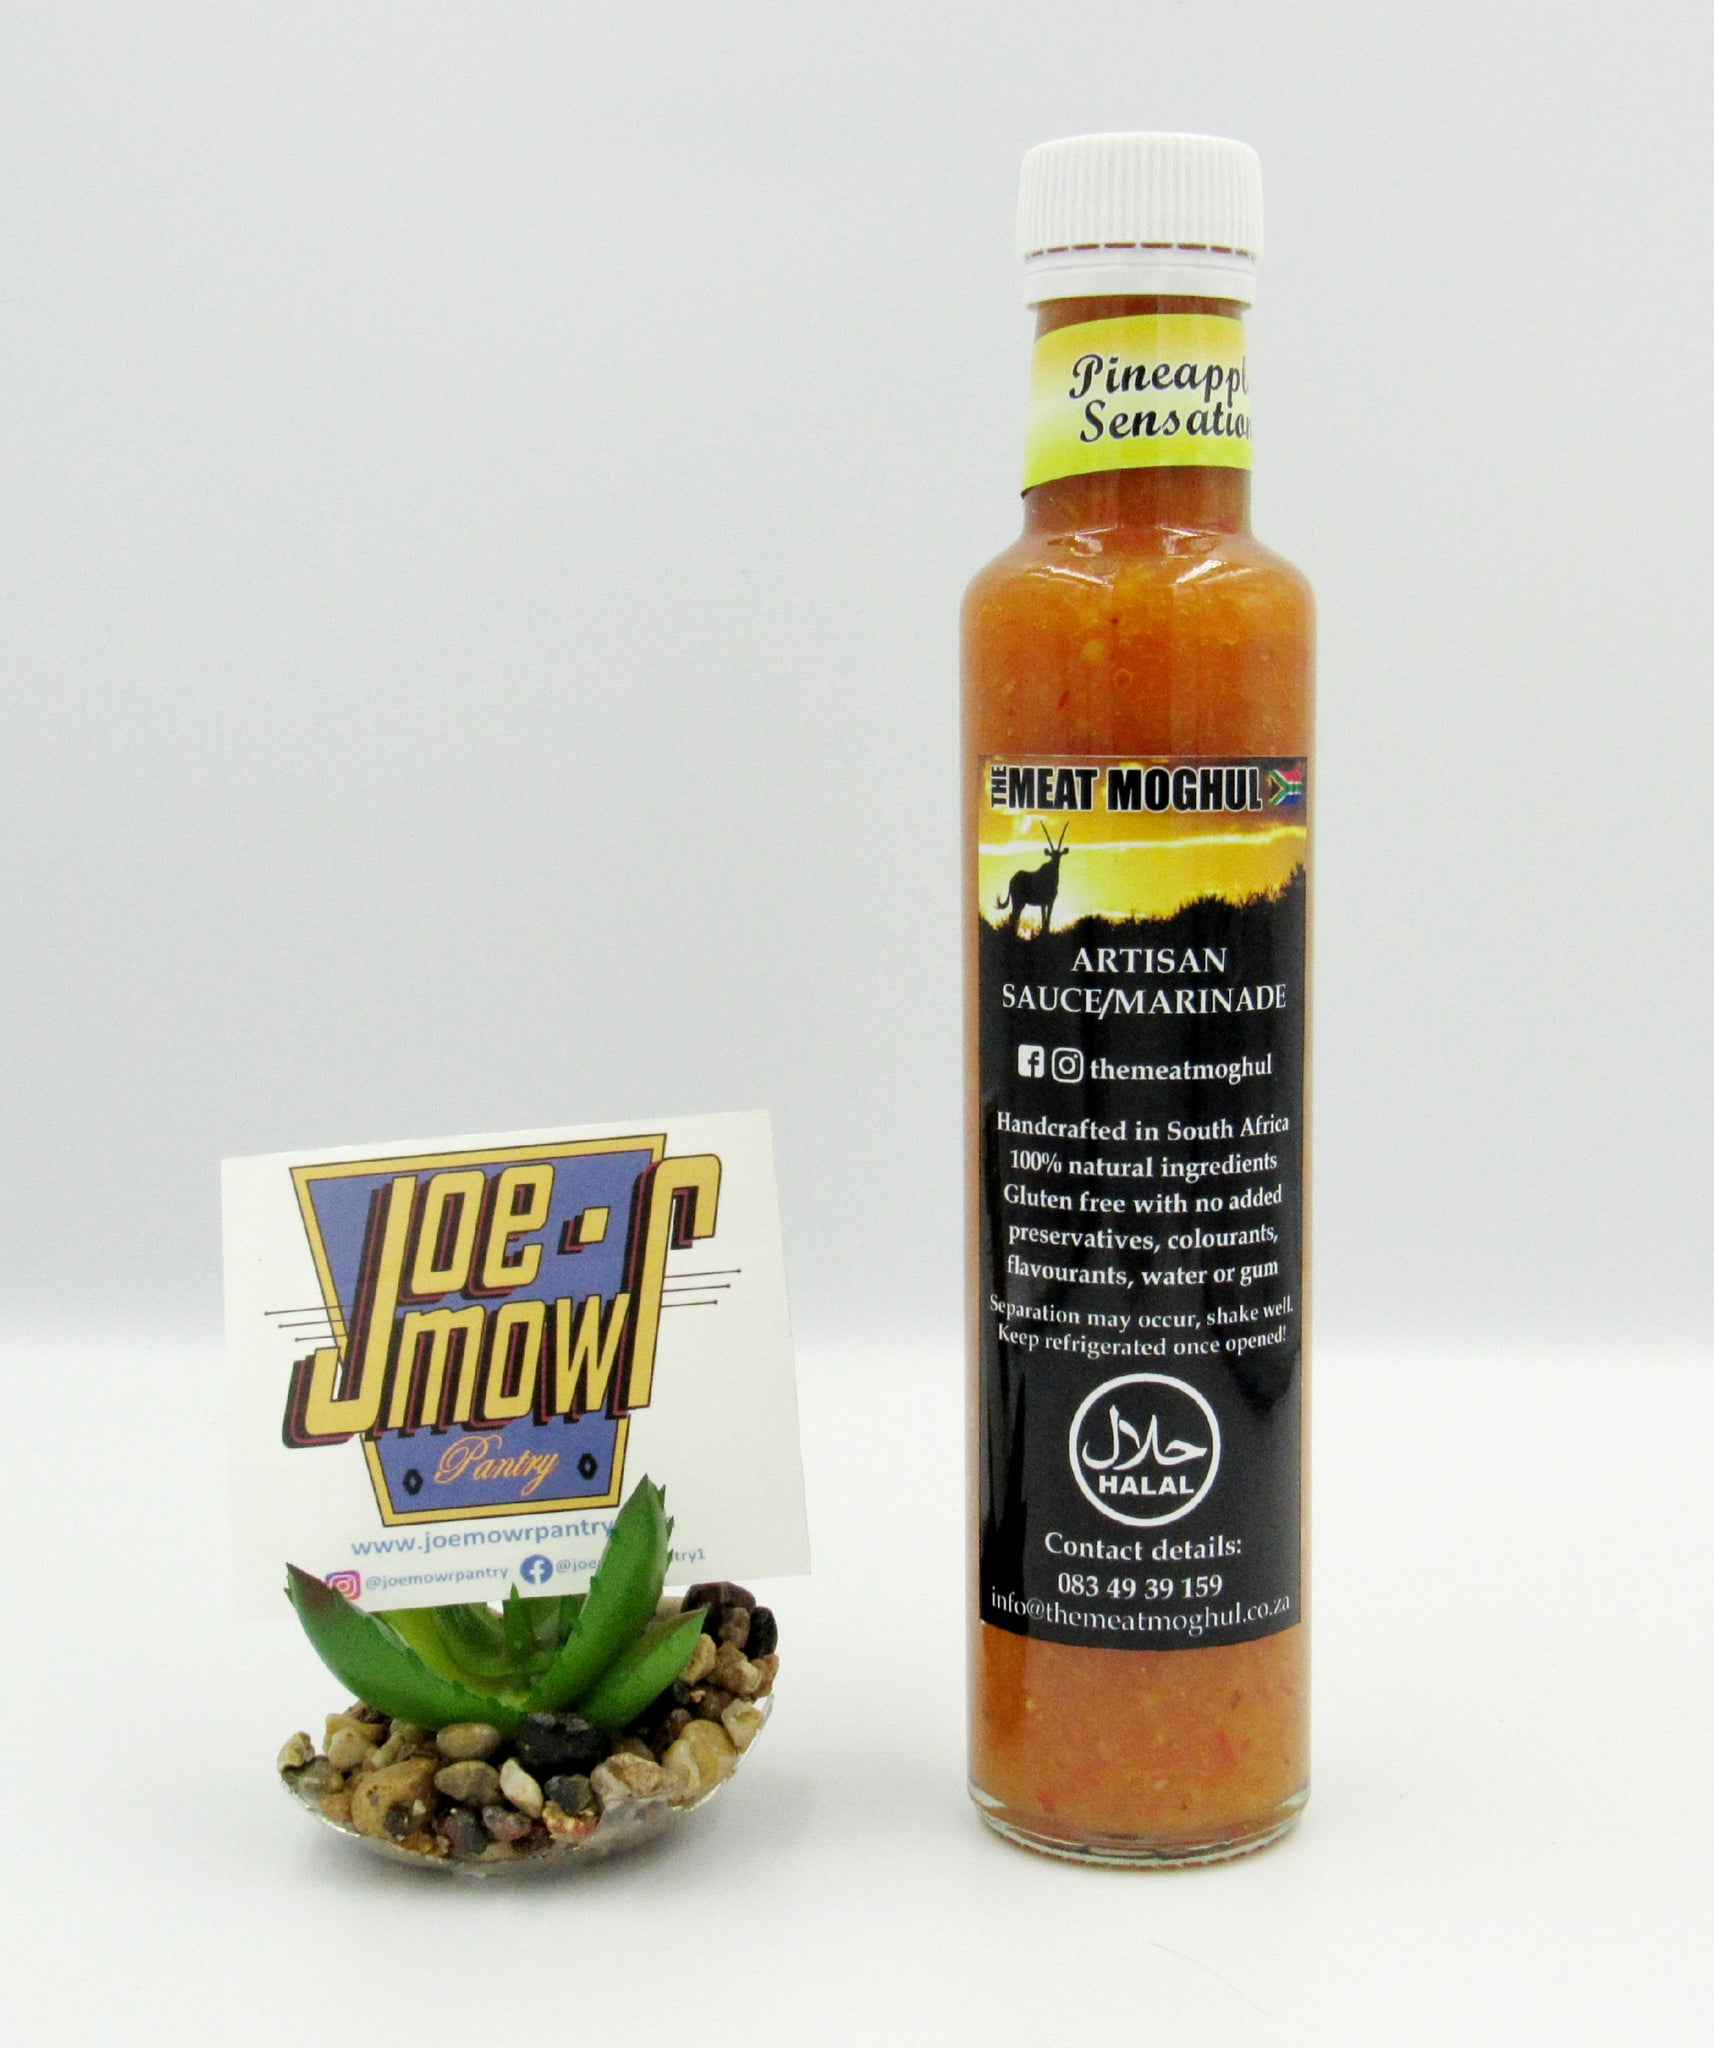 The Meat Moghul Pineapple Sensation sauce/marinade